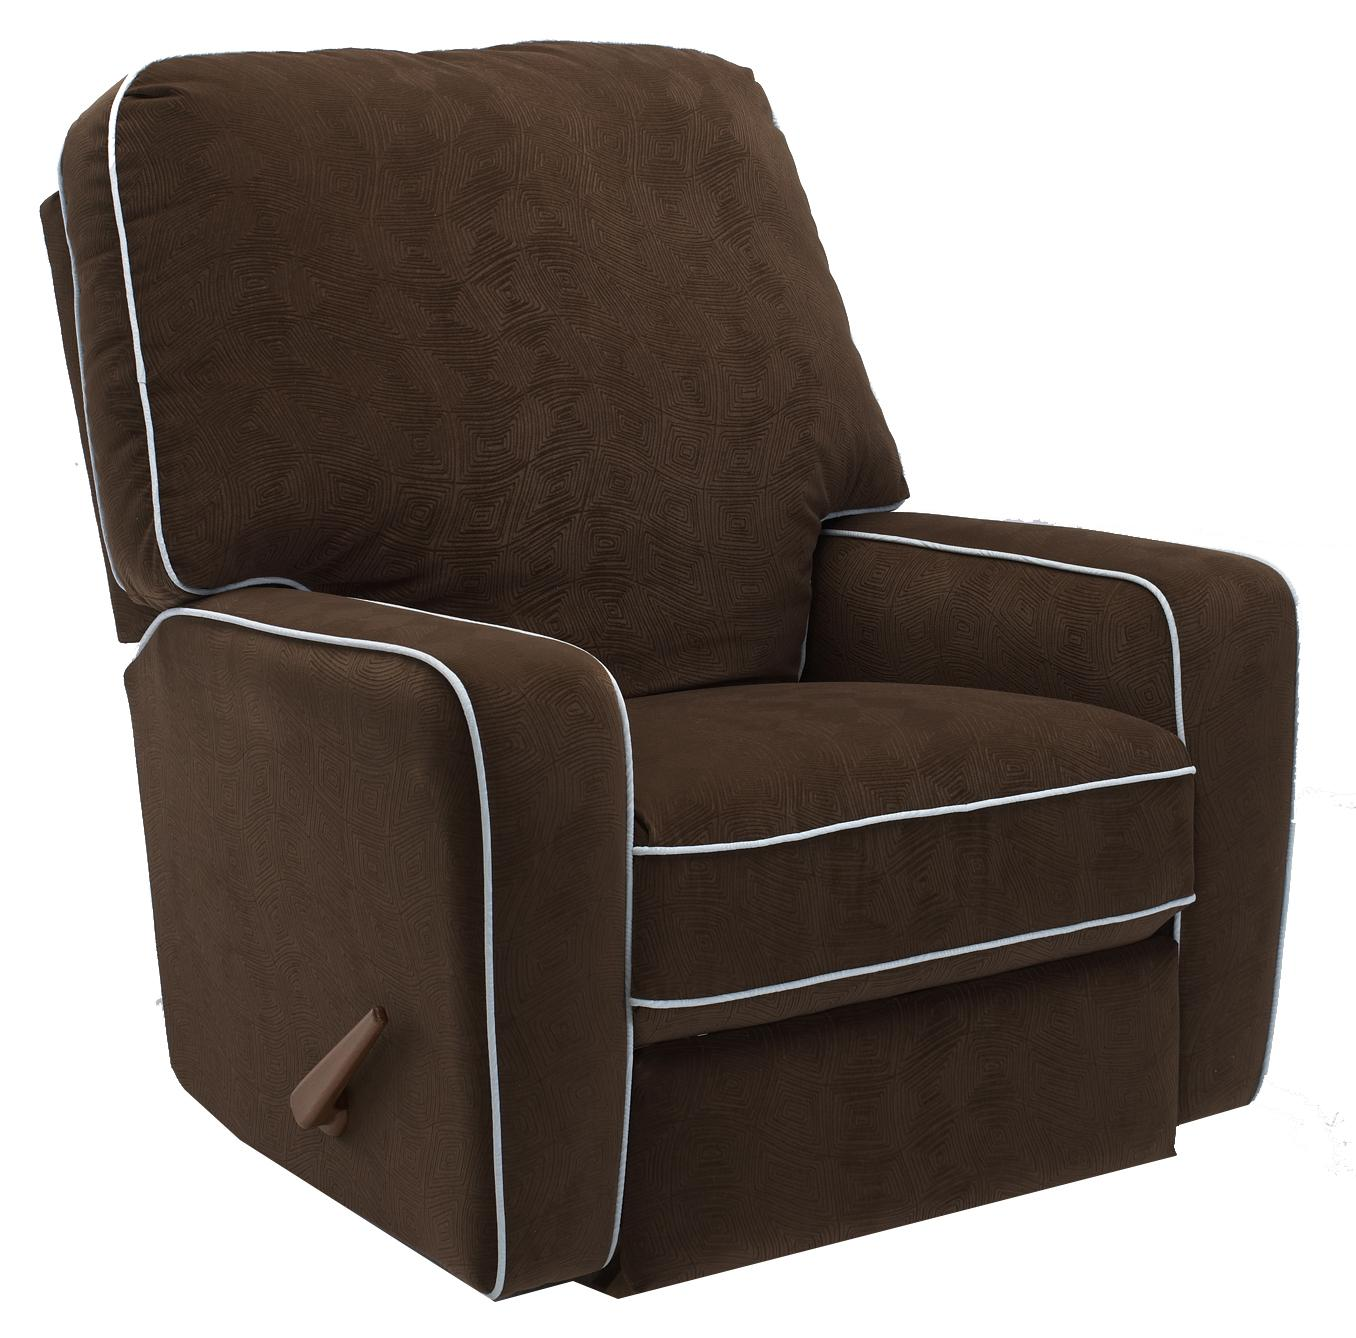 Storytime Recliners Bilana Recliner by Best Chairs Storytime Series at Best Home Furnishings